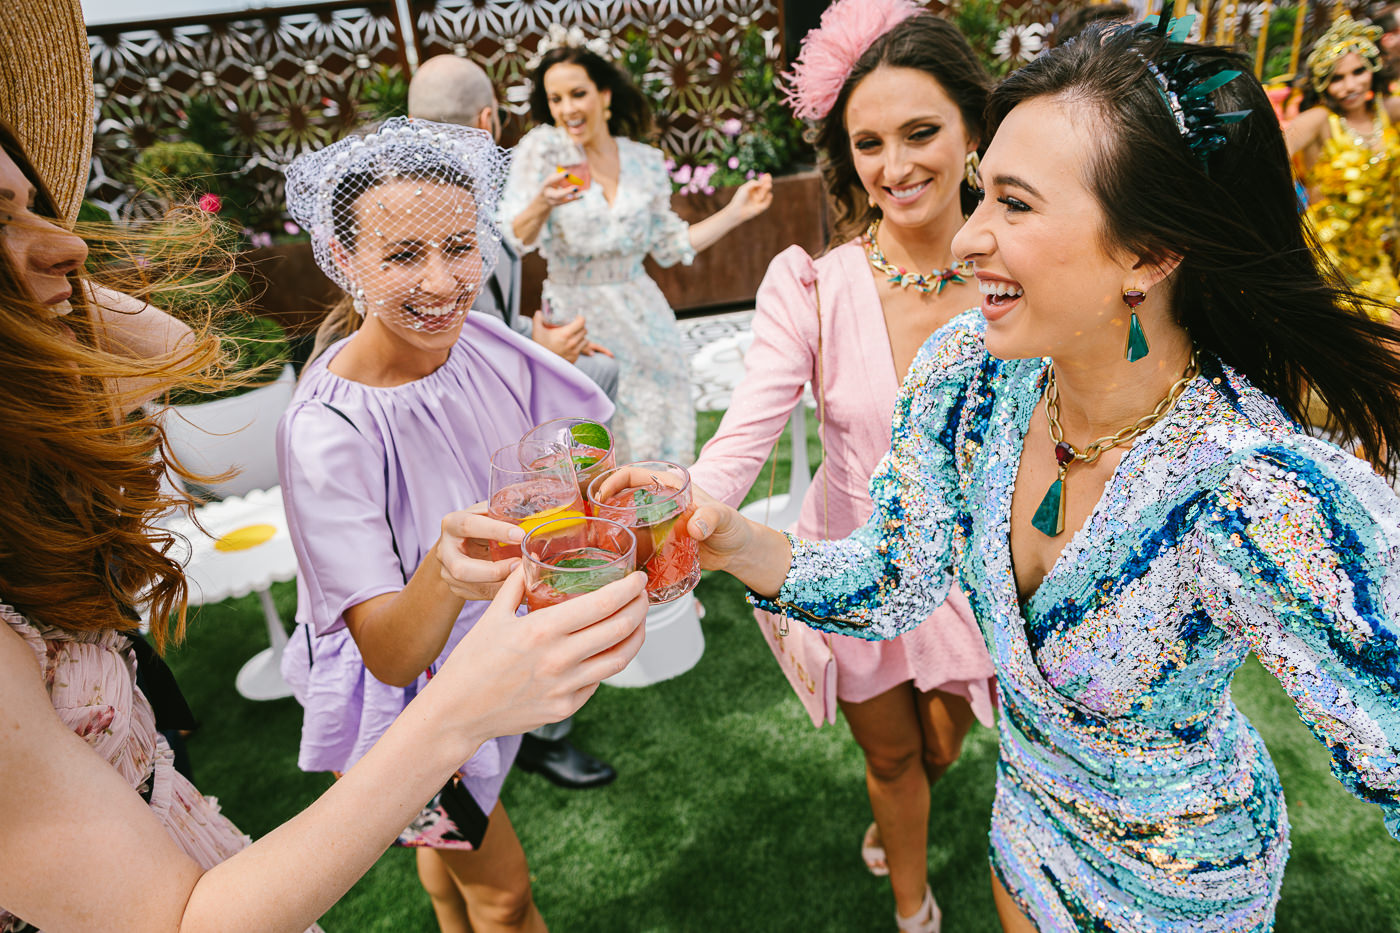 racegoers having fun and dancing at the Melbourne Cup